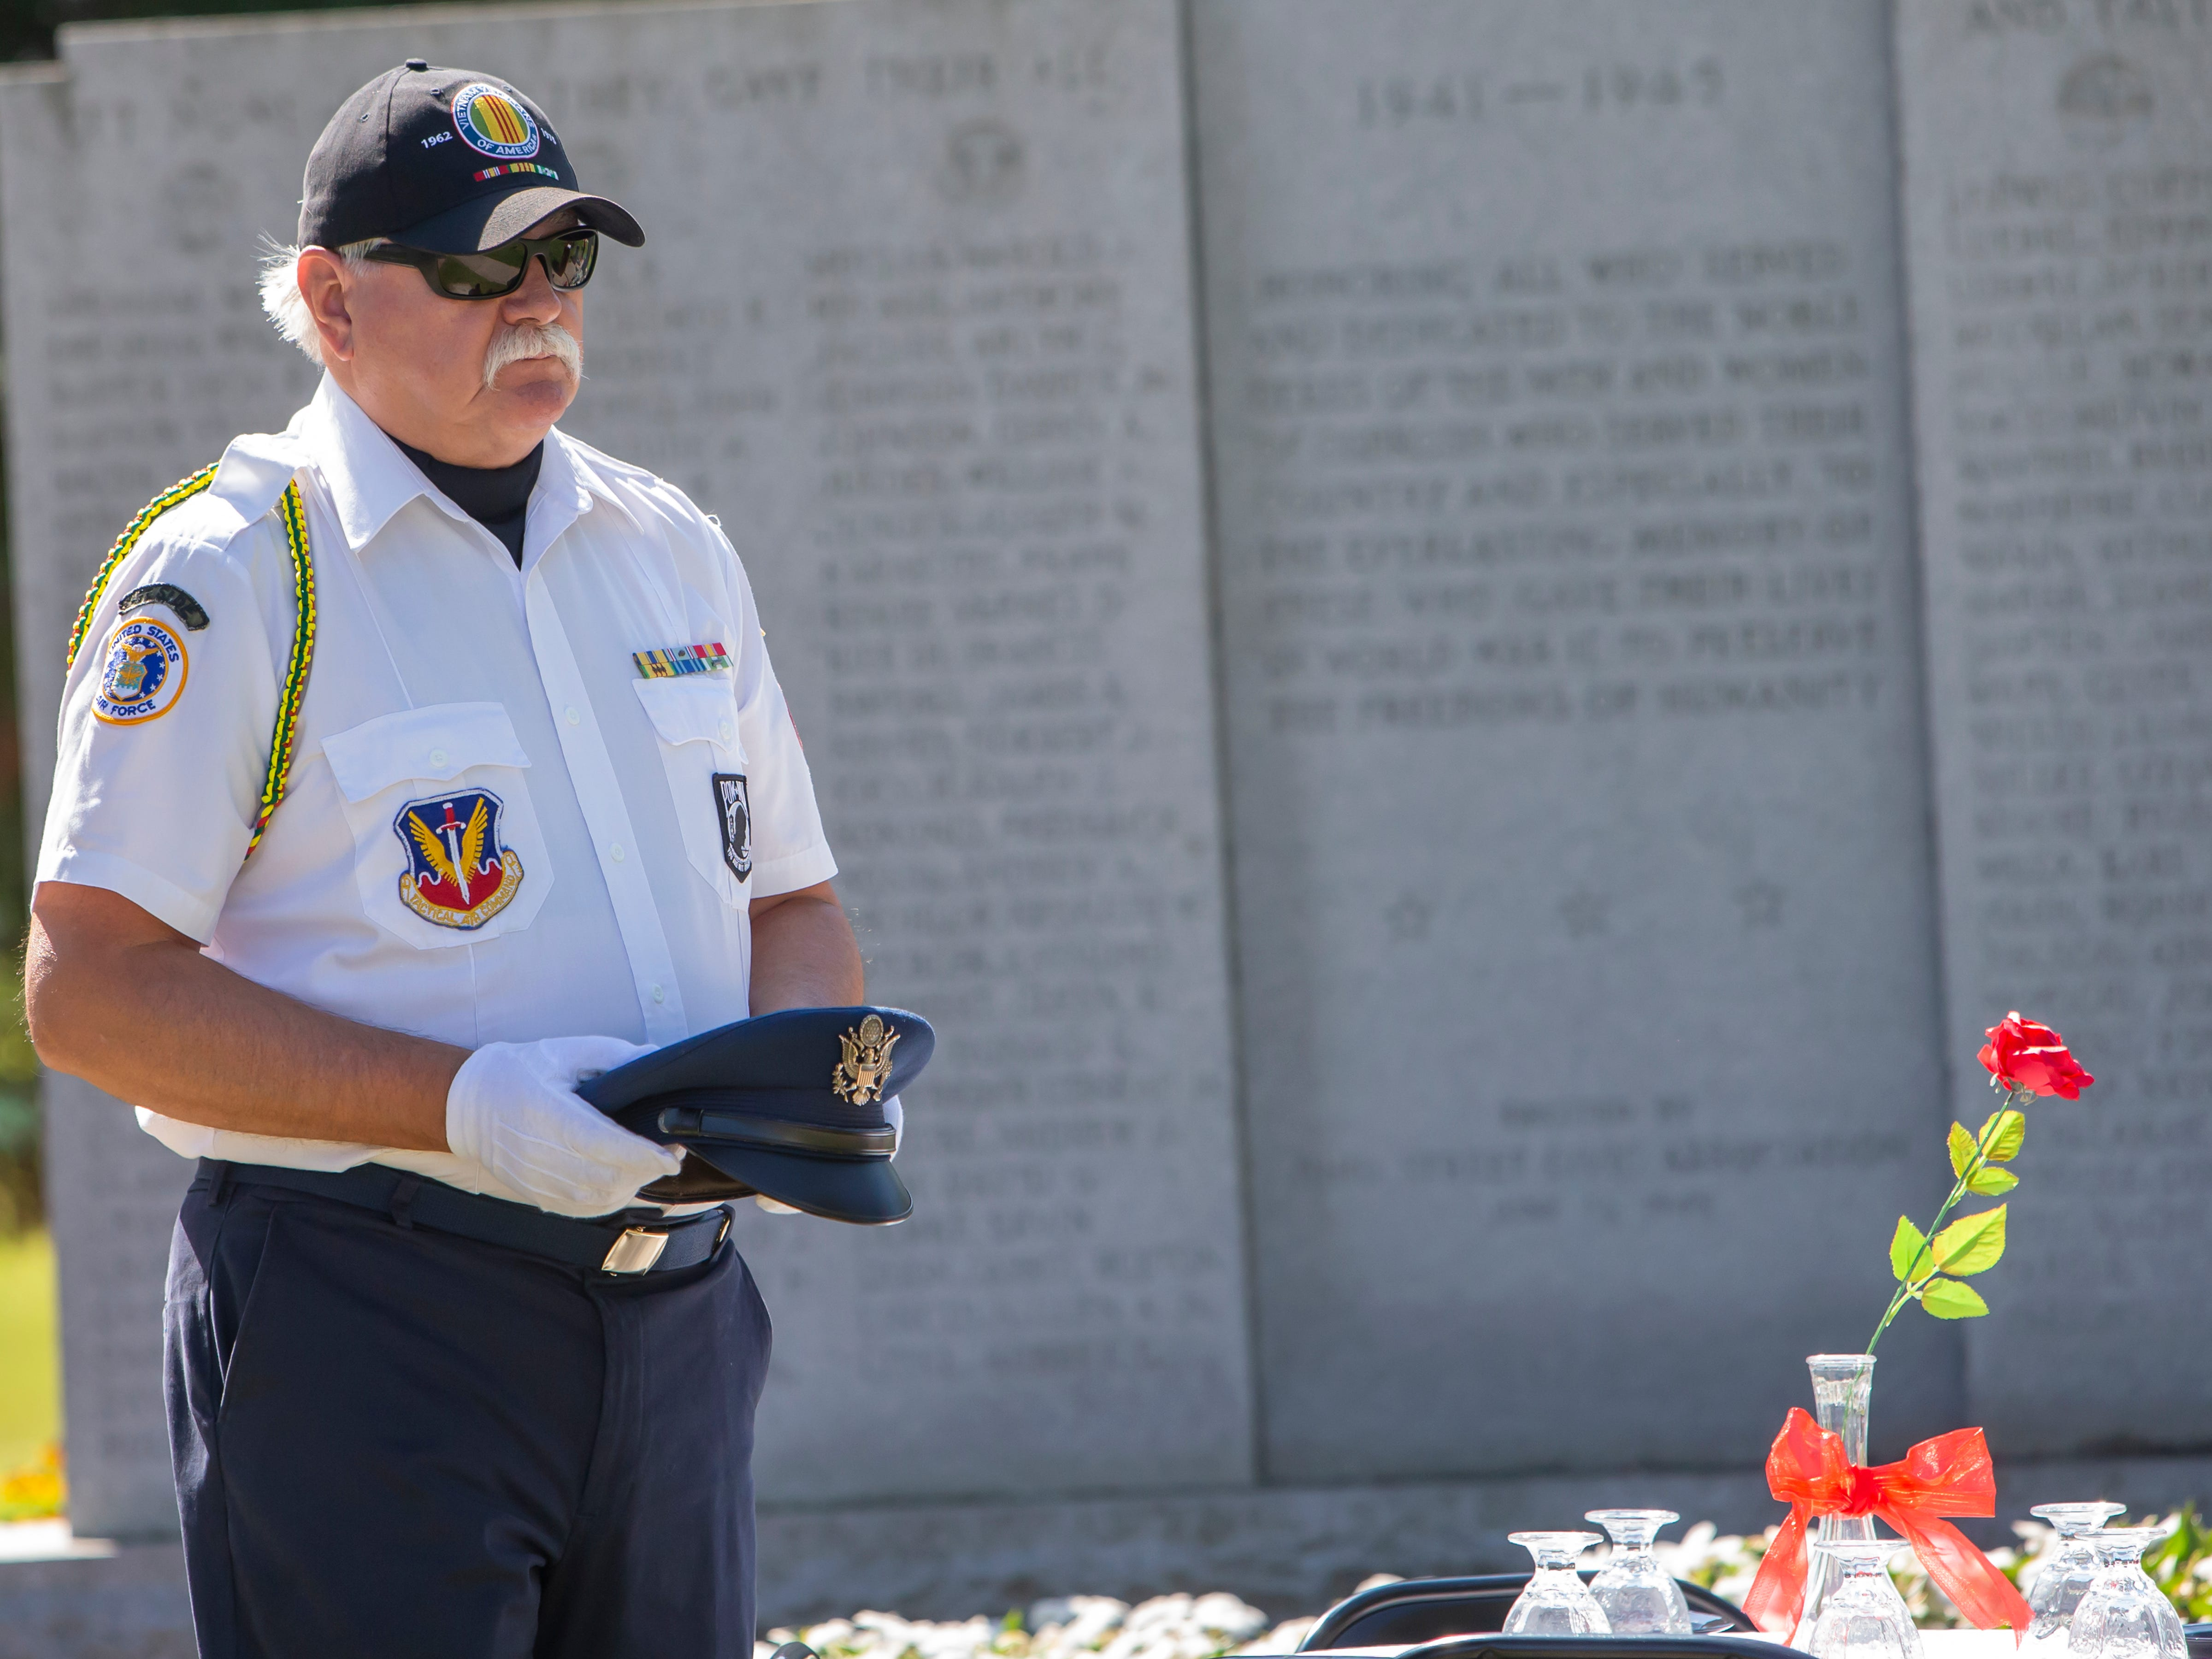 Retired Bruce Williams represents the Marines during the annual POW MIA Remembrance Ceremony at South Park Veterans Memorial on Saturday, September 15, 2018.